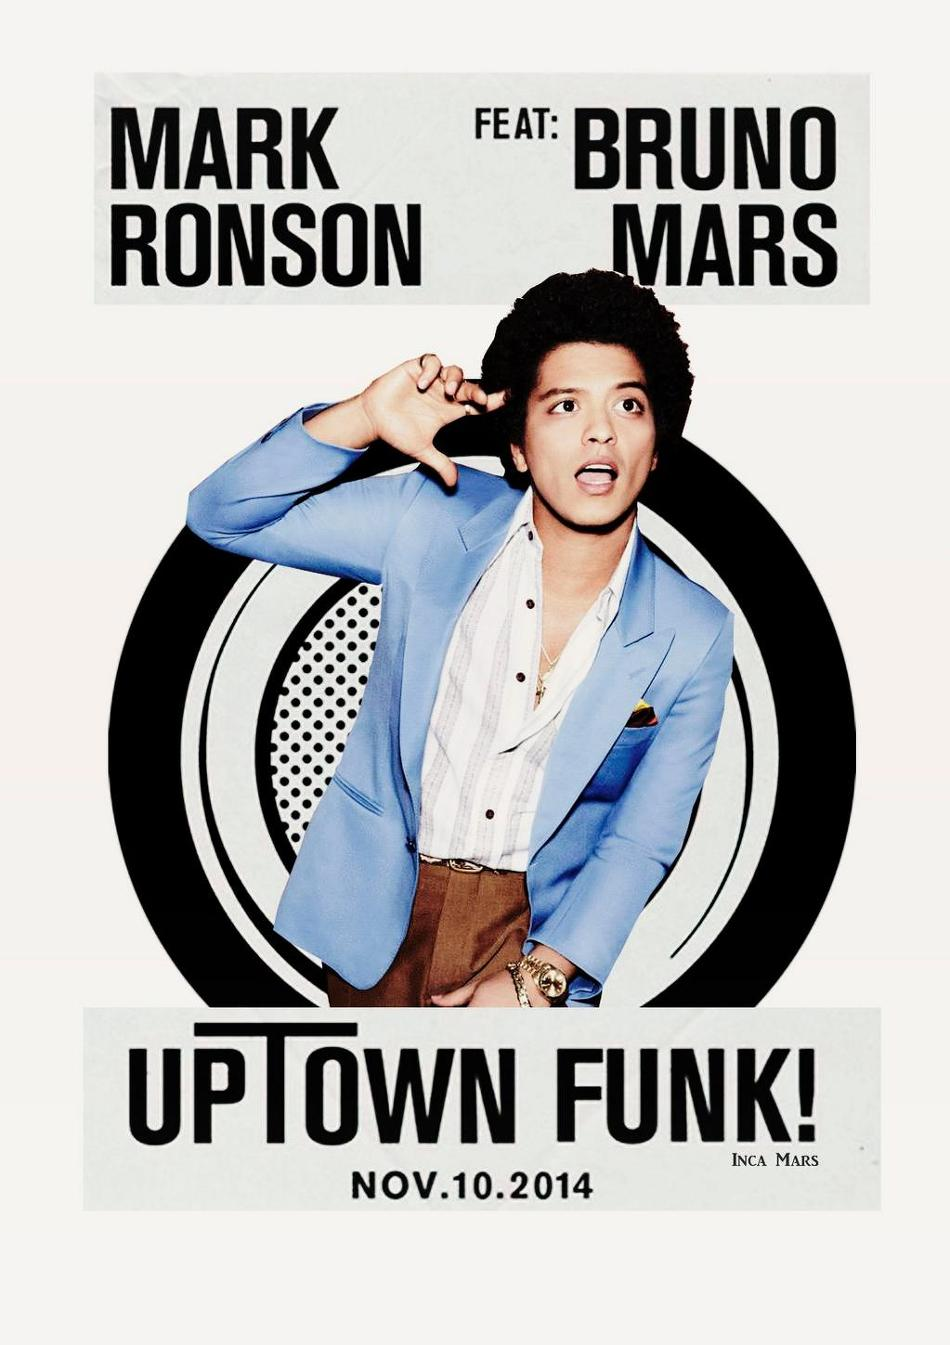 Music channel 66 6mhz mark ronson ft bruno mars uptown funk